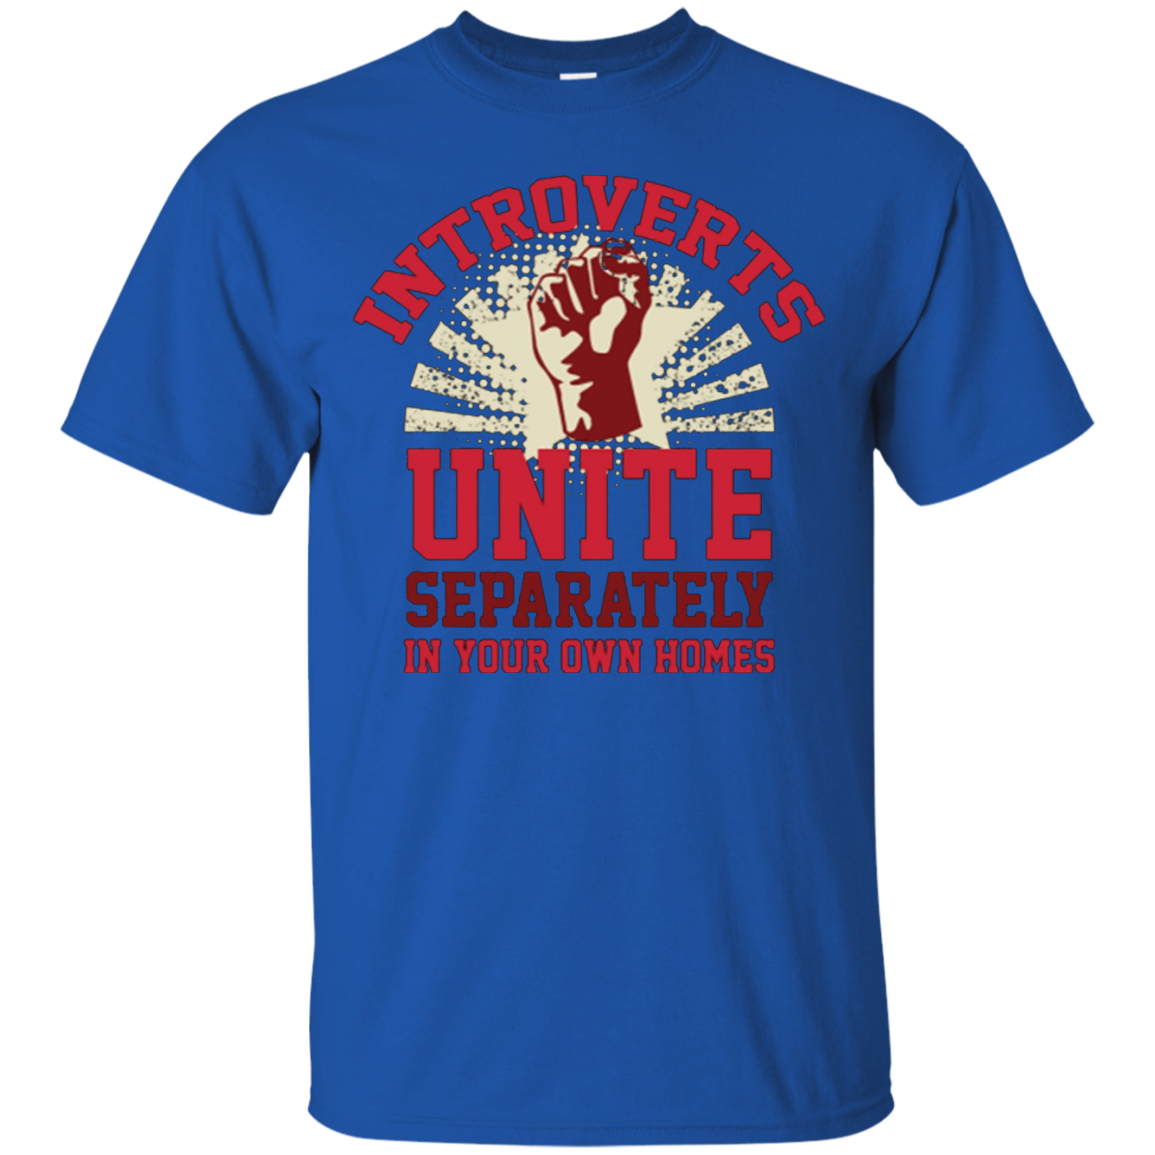 Introverts Unite Separately in your own homes T-shirts - T-Shirt